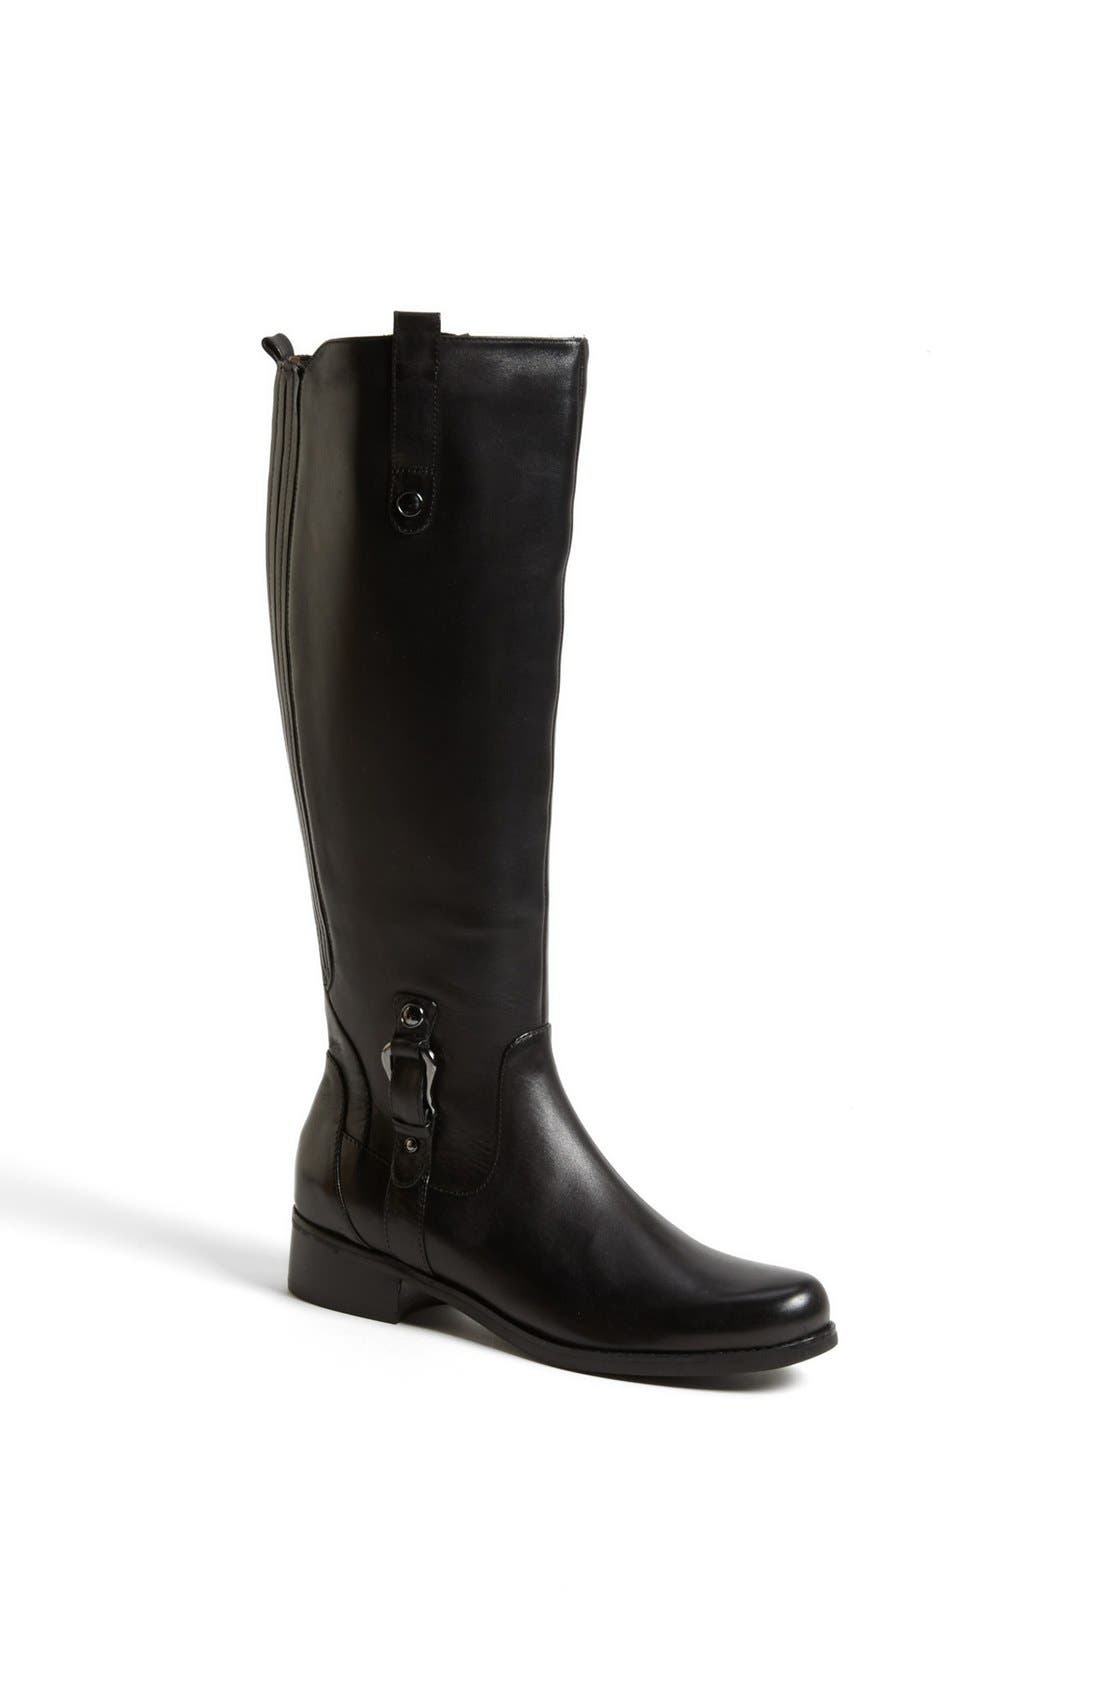 Alternate Image 1 Selected - Blondo 'Venise' Waterproof Leather Riding Boot (Women)